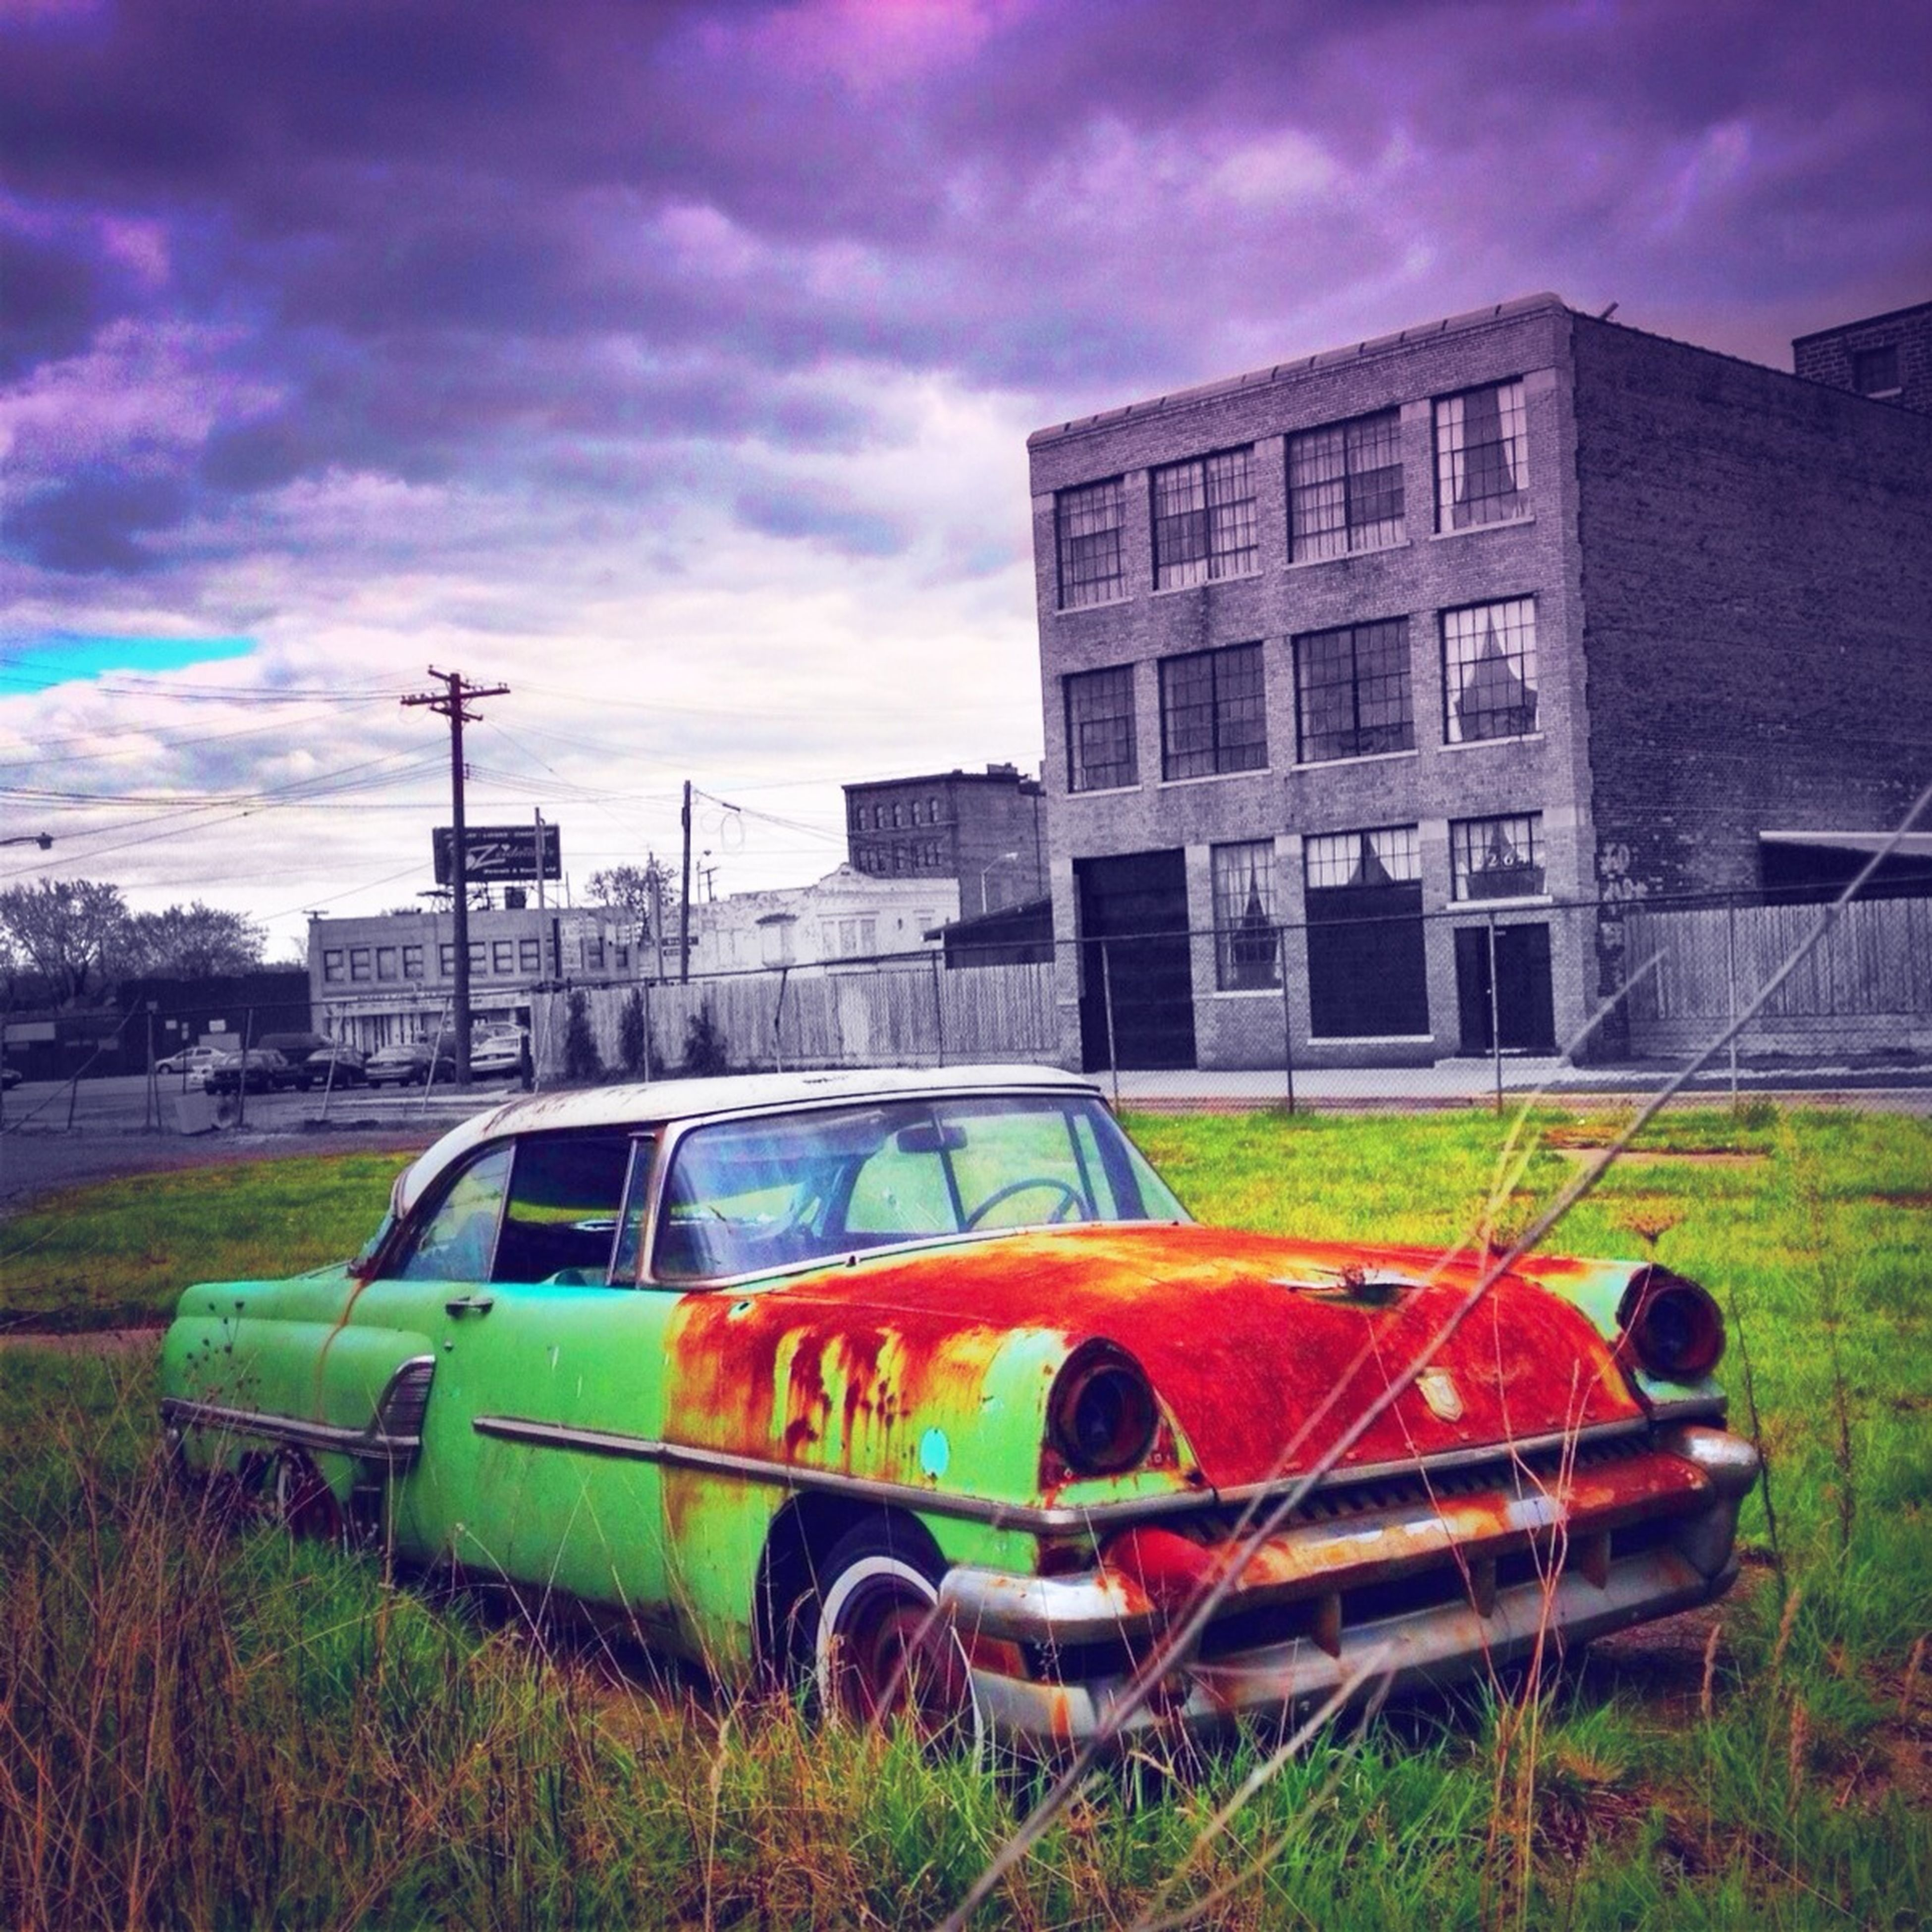 transportation, sky, mode of transport, cloud - sky, land vehicle, architecture, built structure, building exterior, grass, cloud, cloudy, field, abandoned, stationary, car, graffiti, tree, outdoors, day, no people